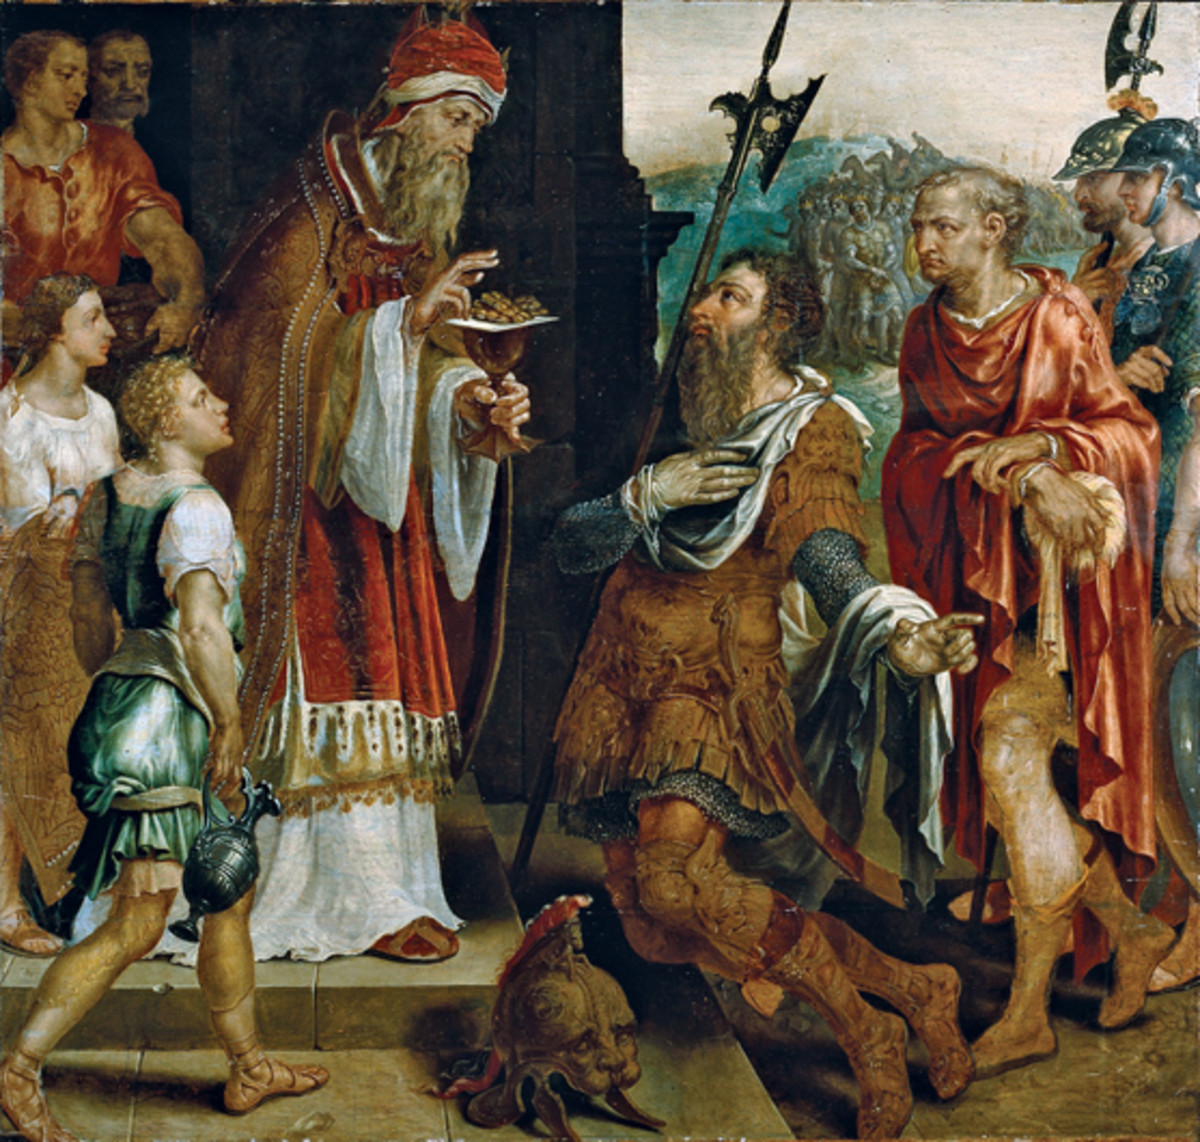 Melchizedek talks to Abraham